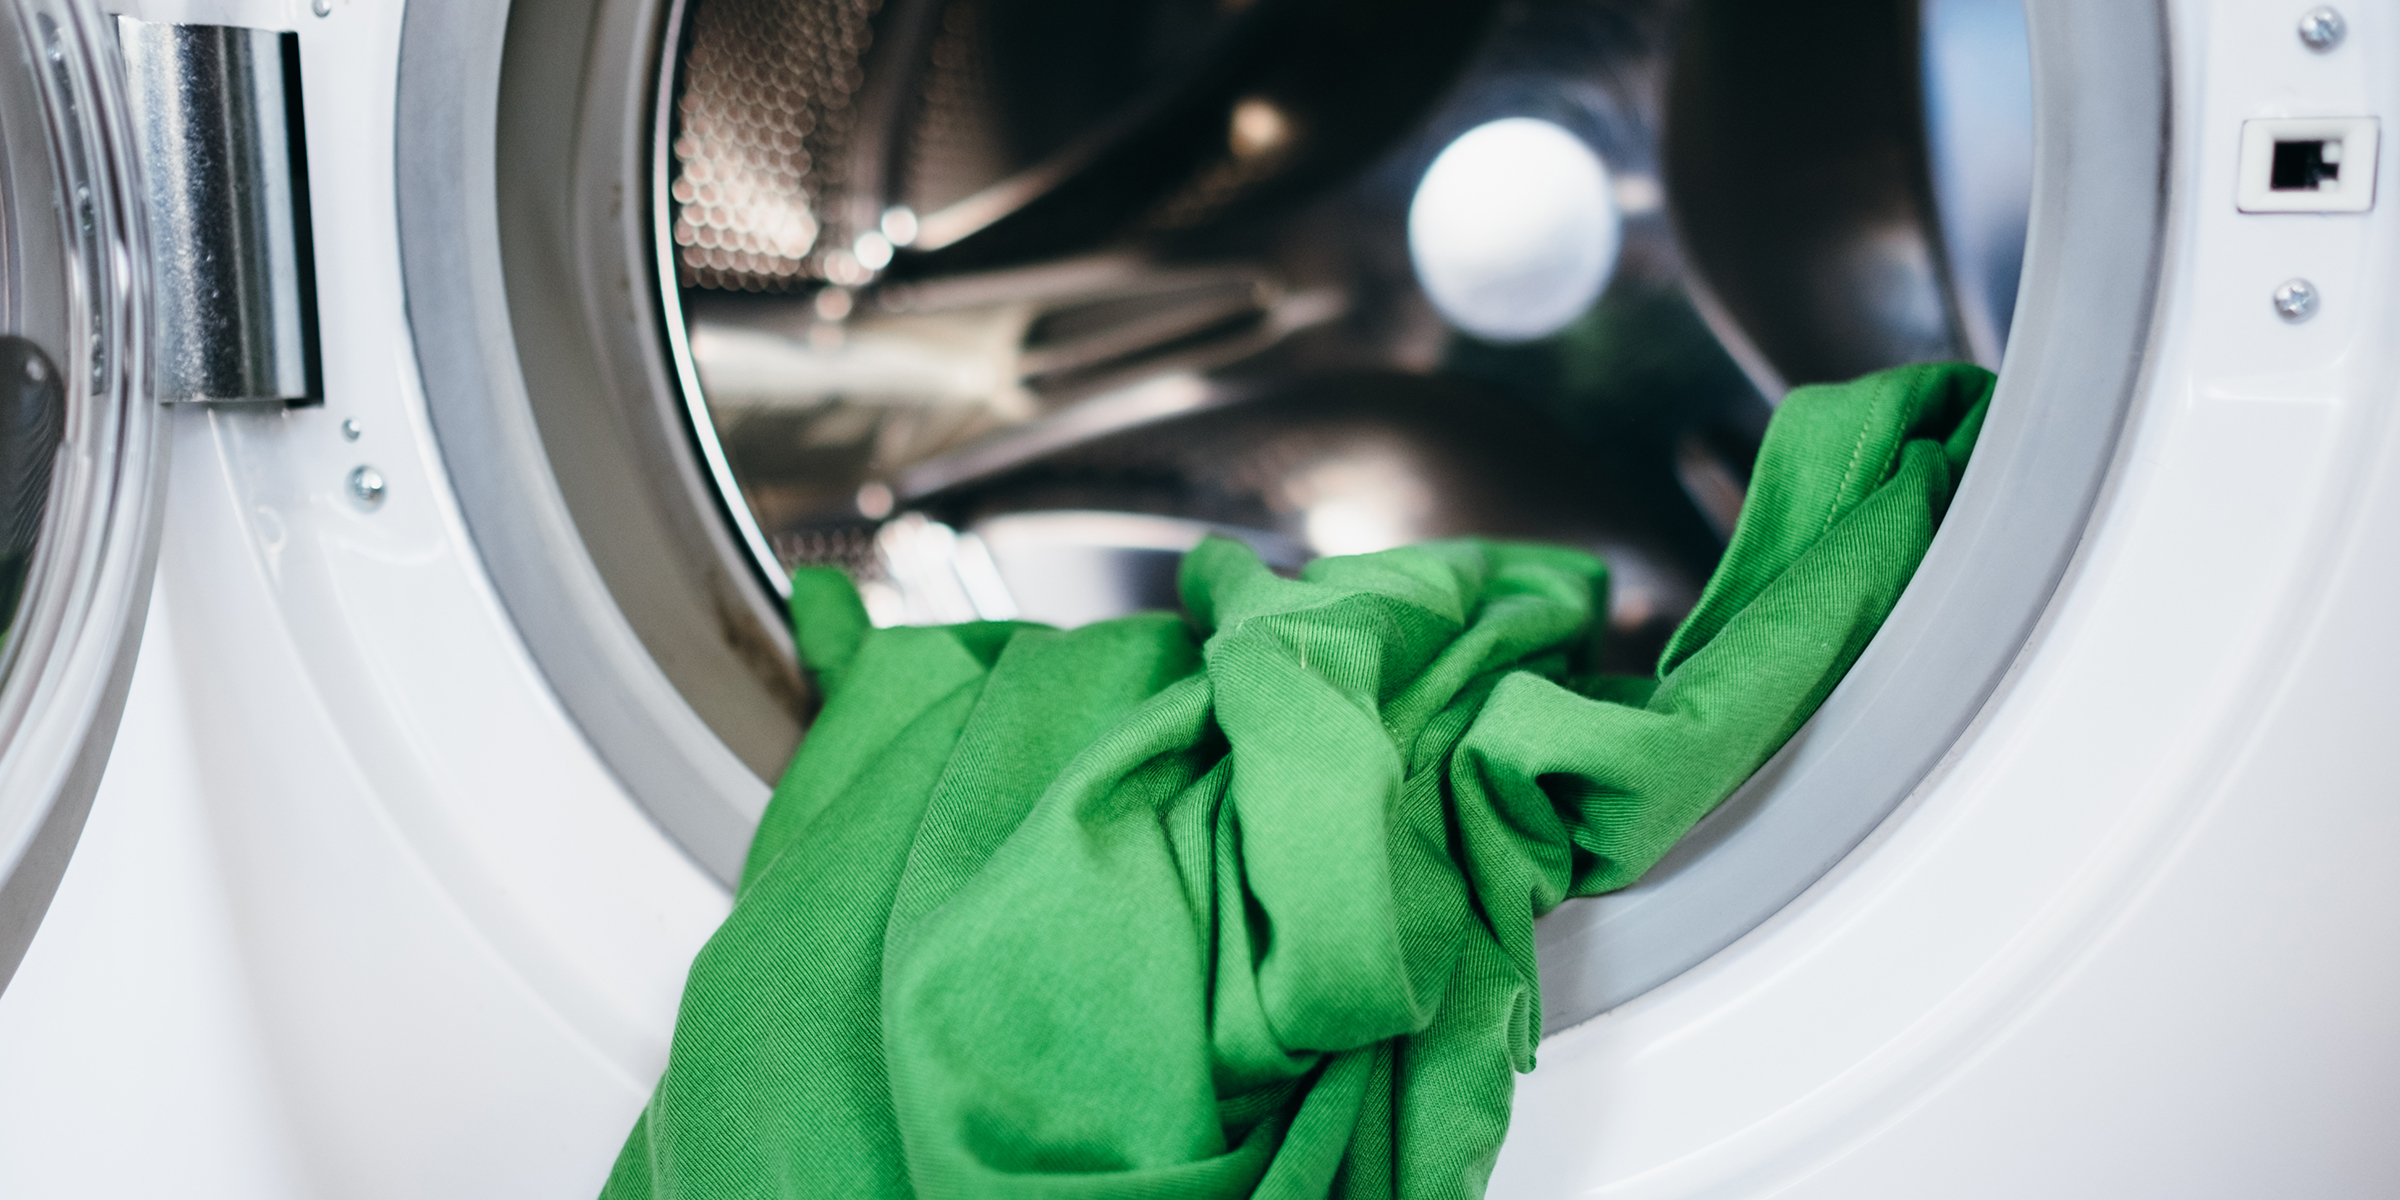 3-year-old dies after being trapped inside washing machine